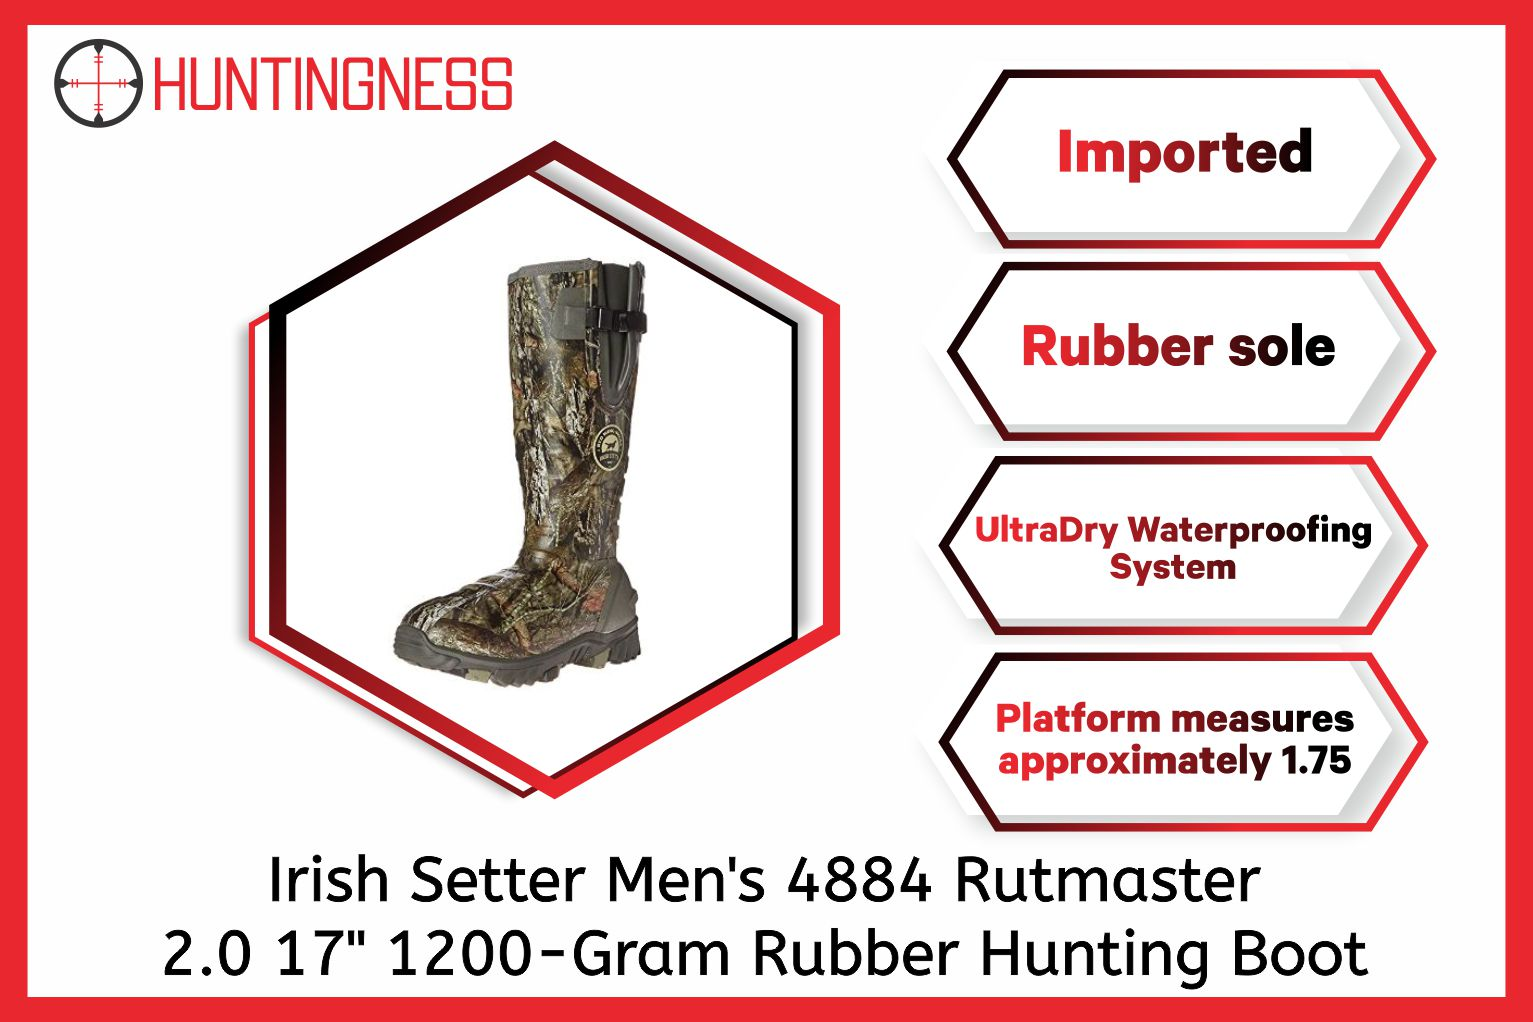 "Irish Setter Men's 4884 Rutmaster 2.0 17"" 1200-Gram Rubber Hunting Boot infographics"